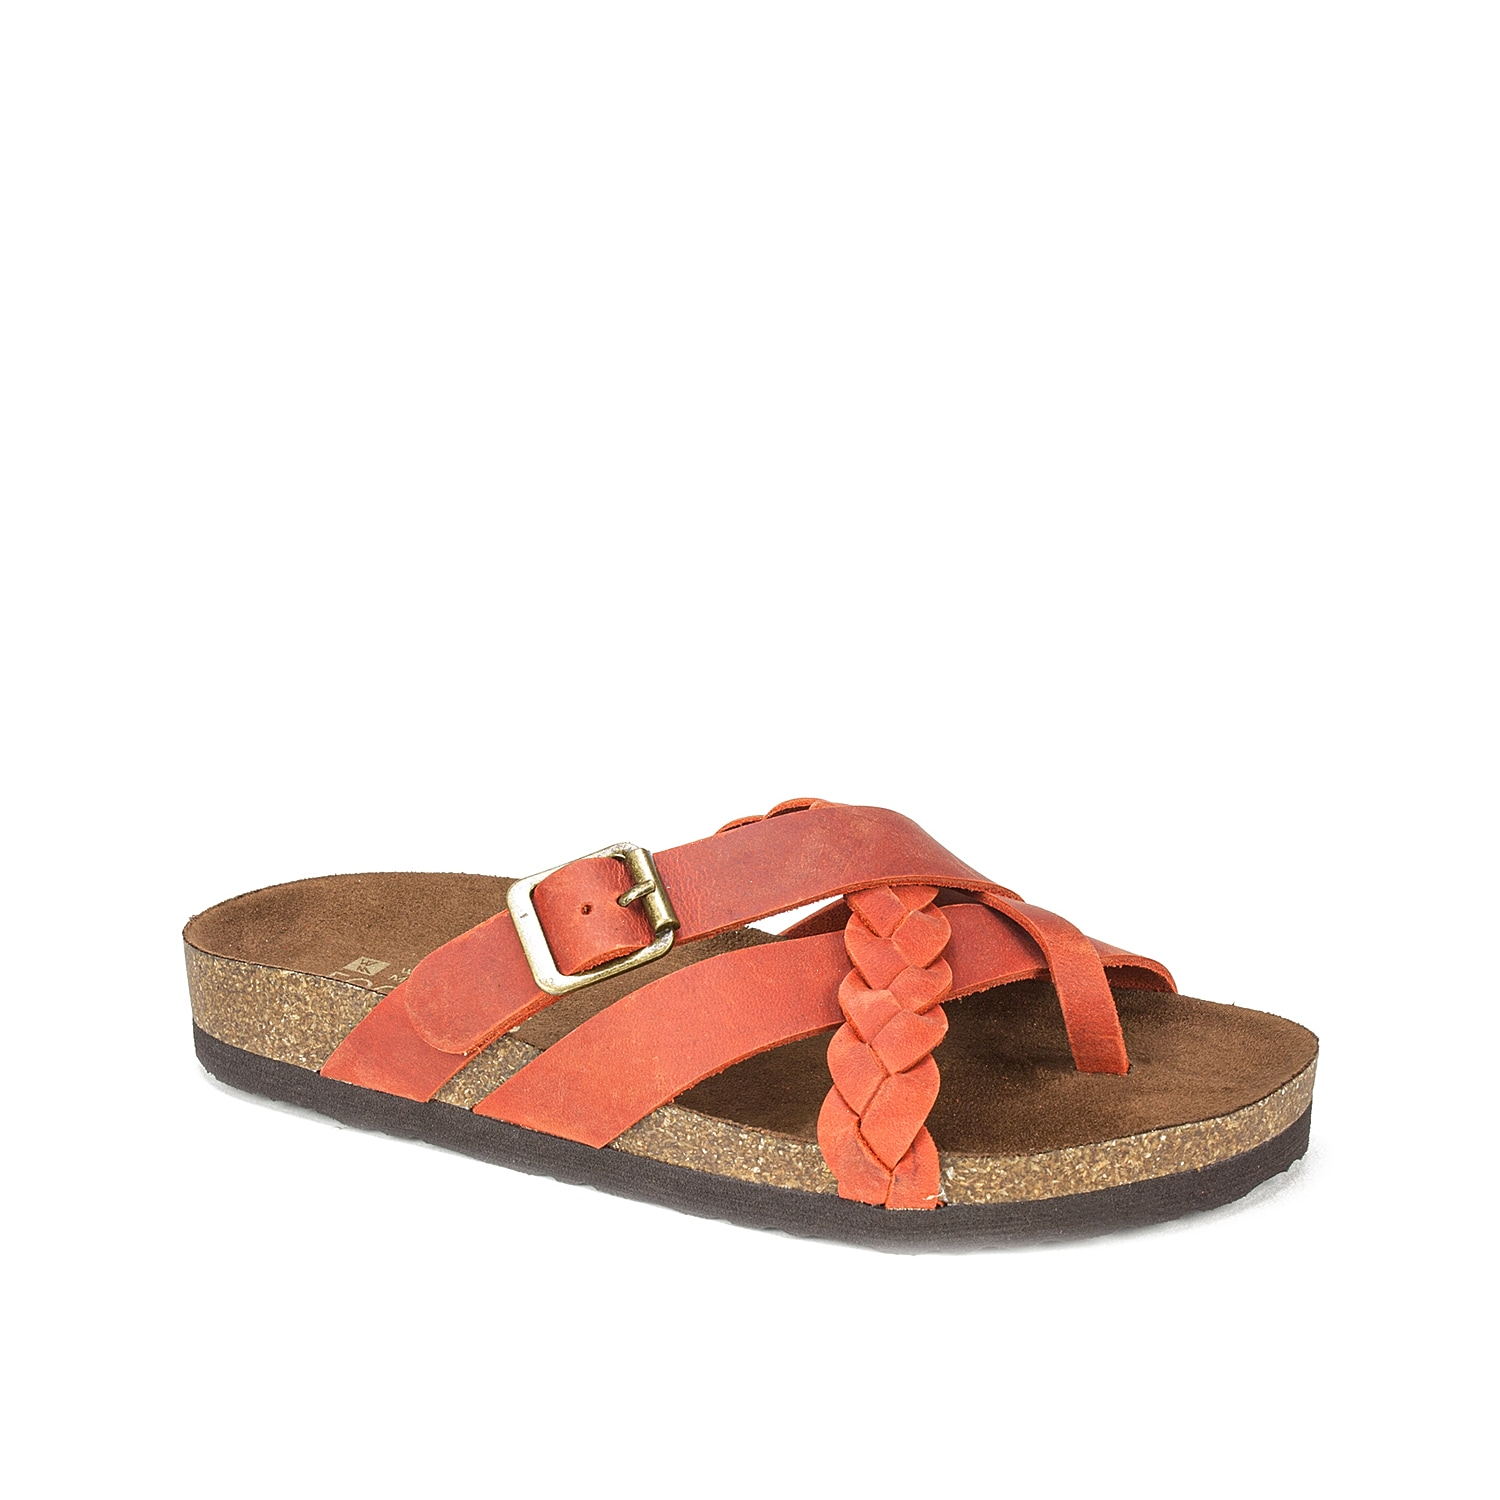 Bring on the summer vibes with the Harrington sandal from White Mountain. A braided accent and cork midsole keep this pair right on trend.